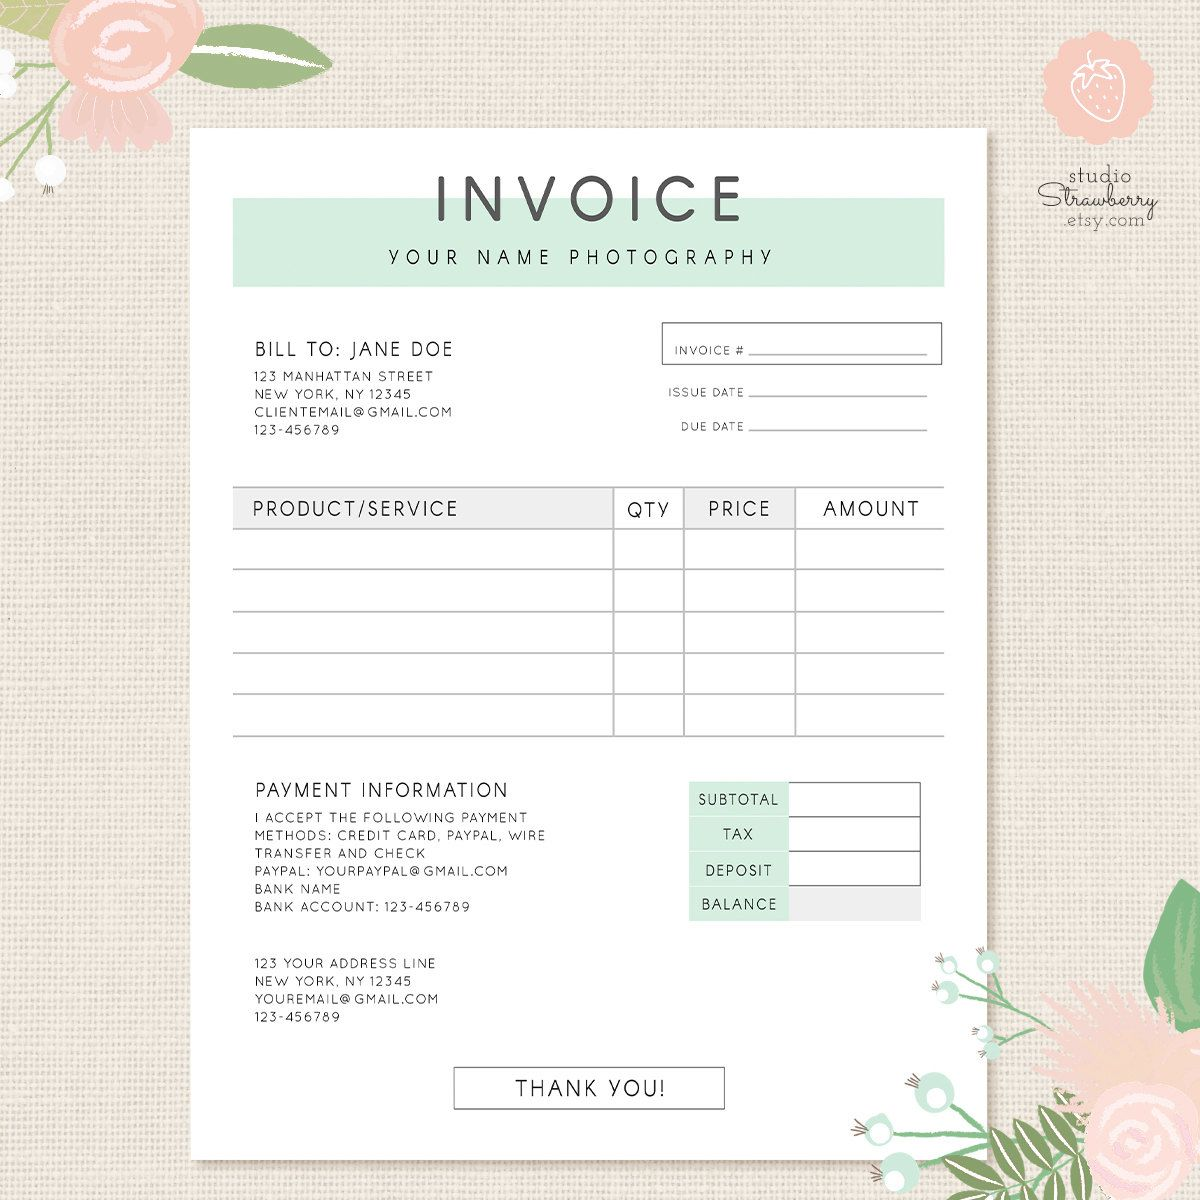 invoice template photography invoice business invoice receipt template for photographers photography forms photoshop template psd file - Invoices For Businesses